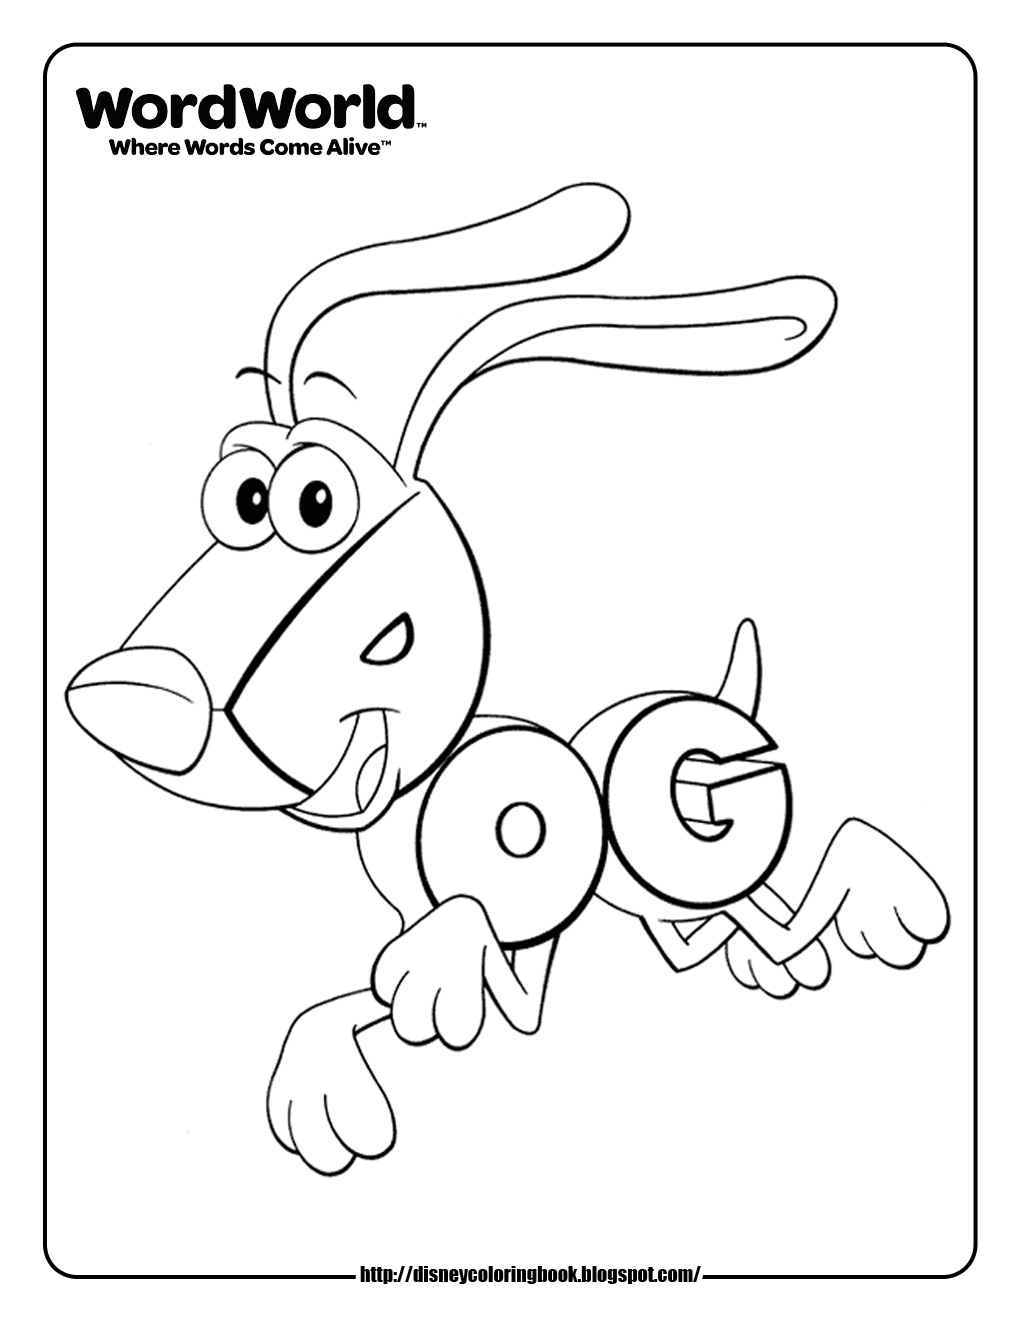 WordWorld 1: Free Disney Coloring Sheets | Learn To Coloring